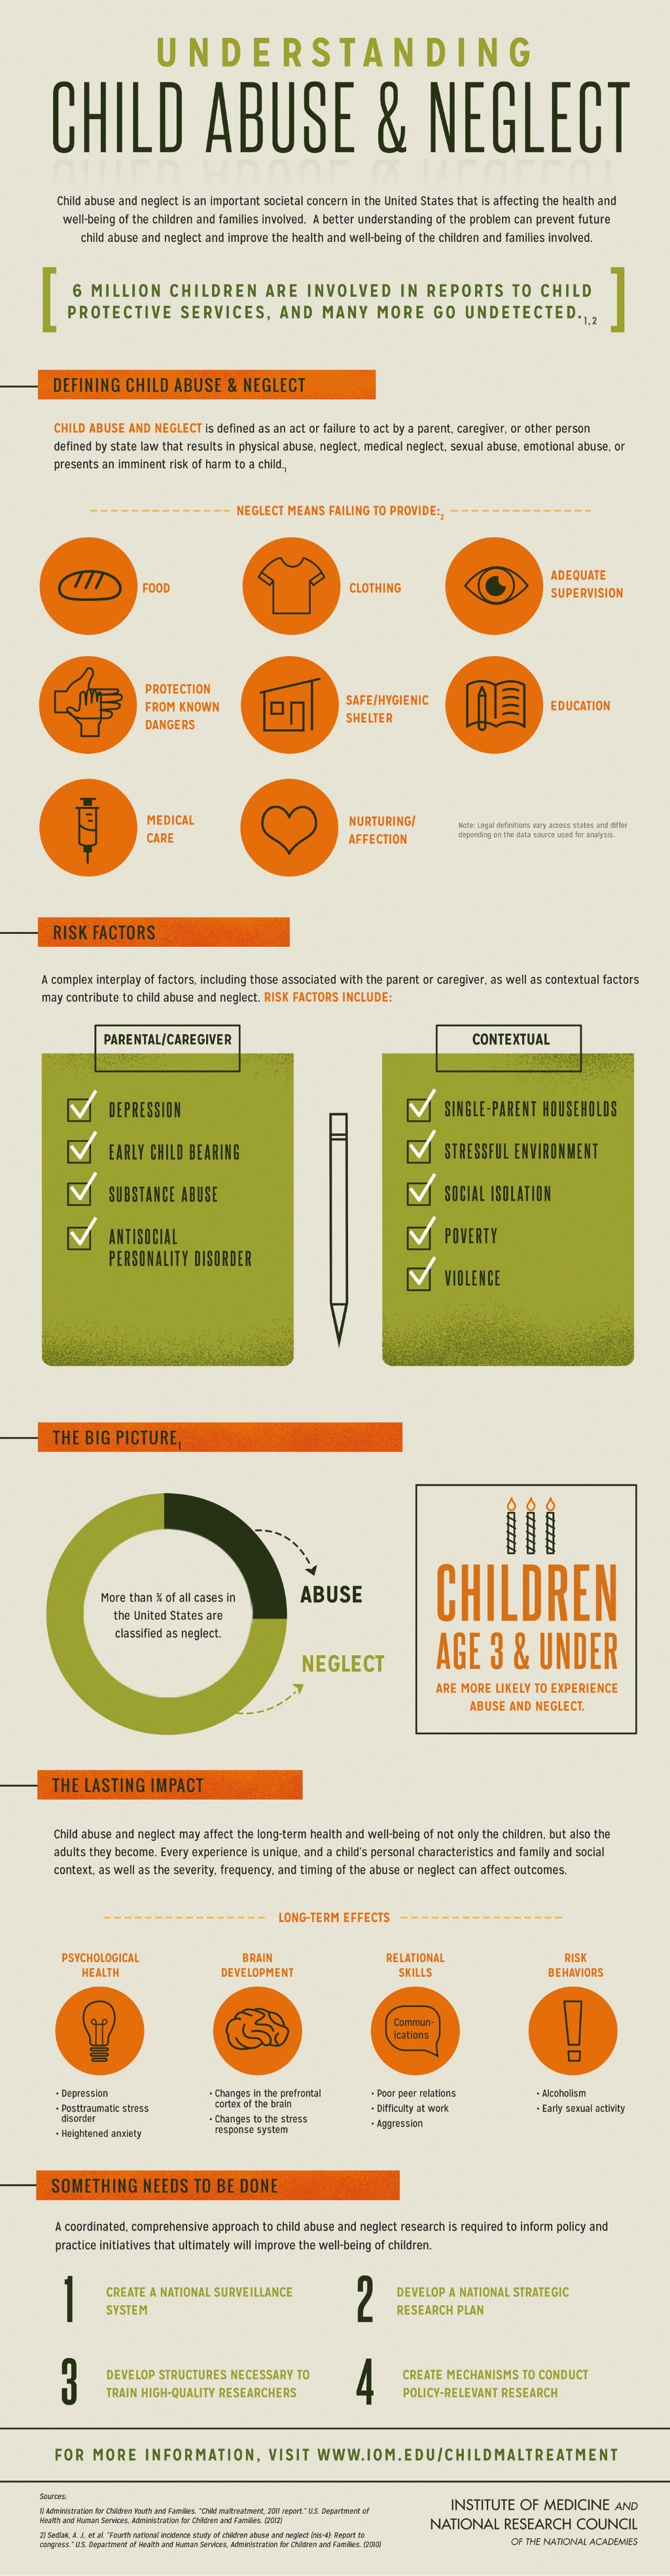 Understanding Child Abuse and Neglect Infographic